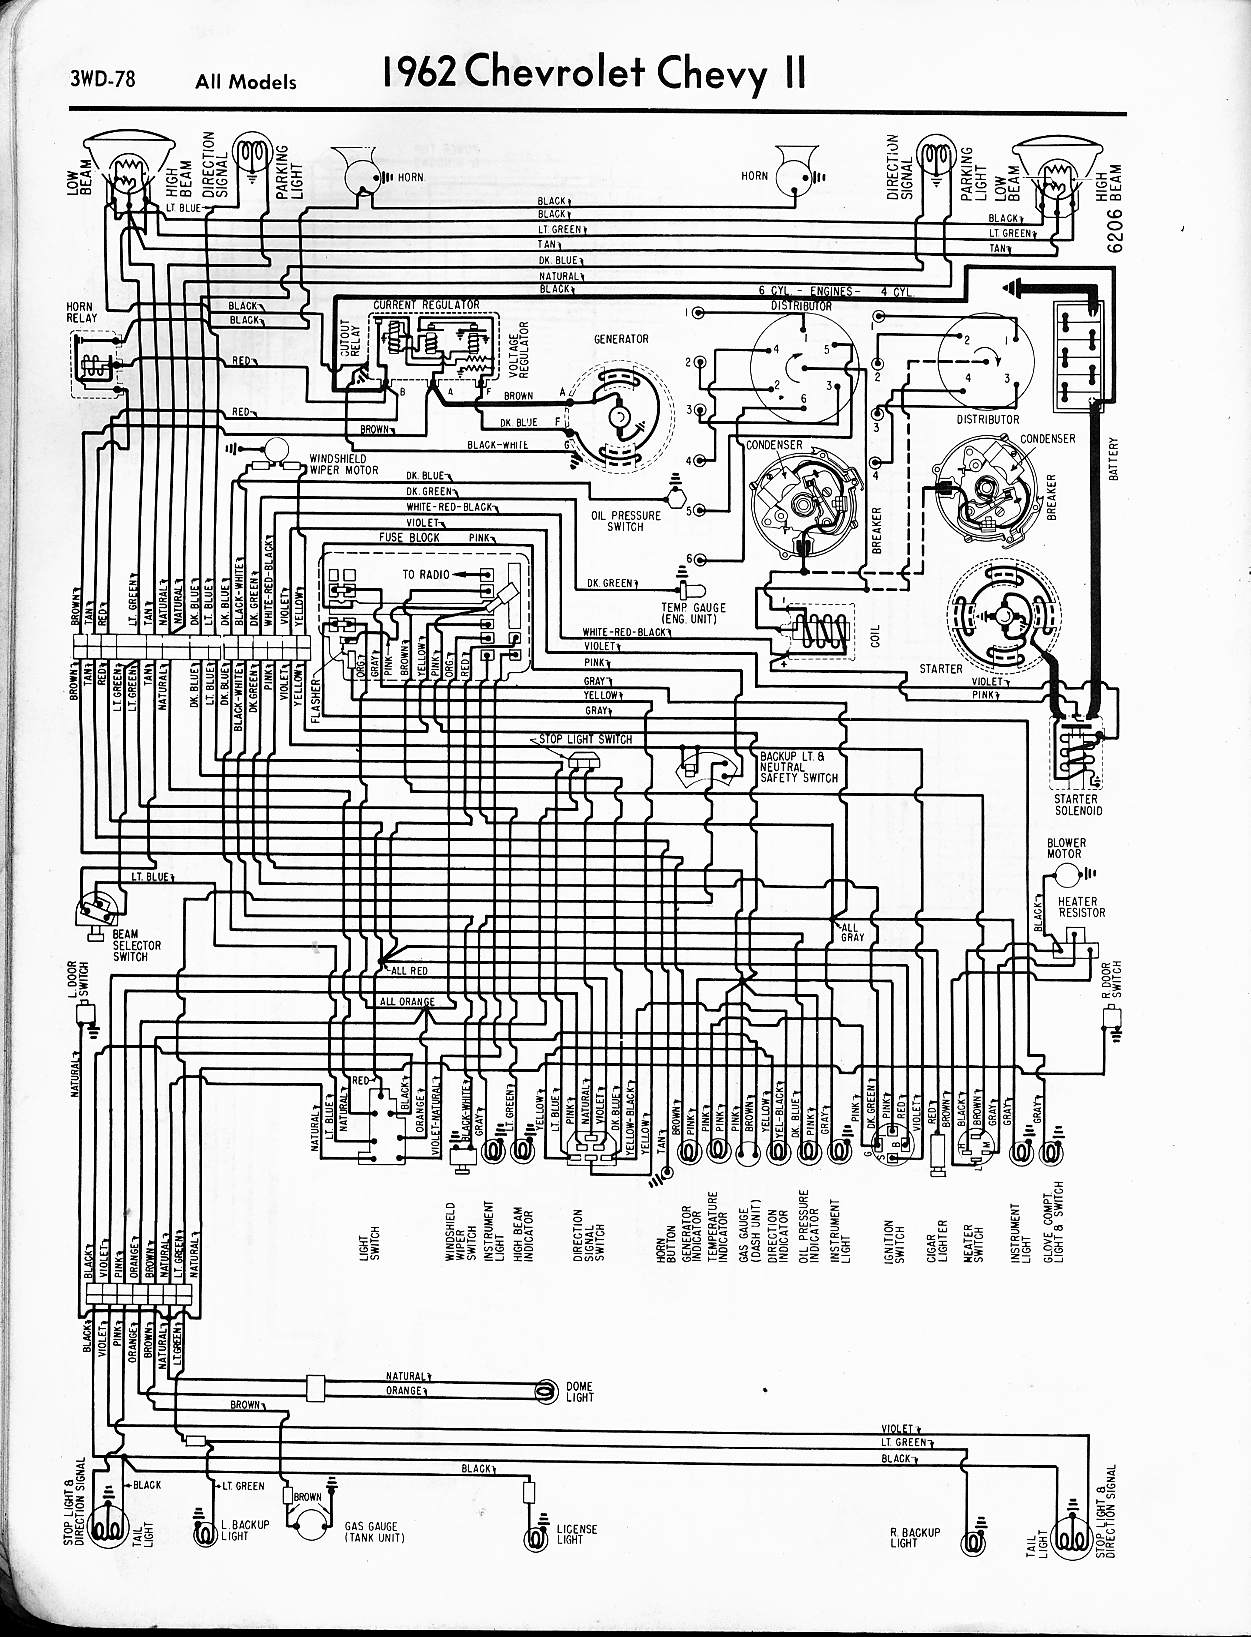 MWireChev62_3WD 078 1963 c10 pickup wiring diagram pdf chevy wiring diagrams \u2022 free 67 Chevy 2 Nova at suagrazia.org